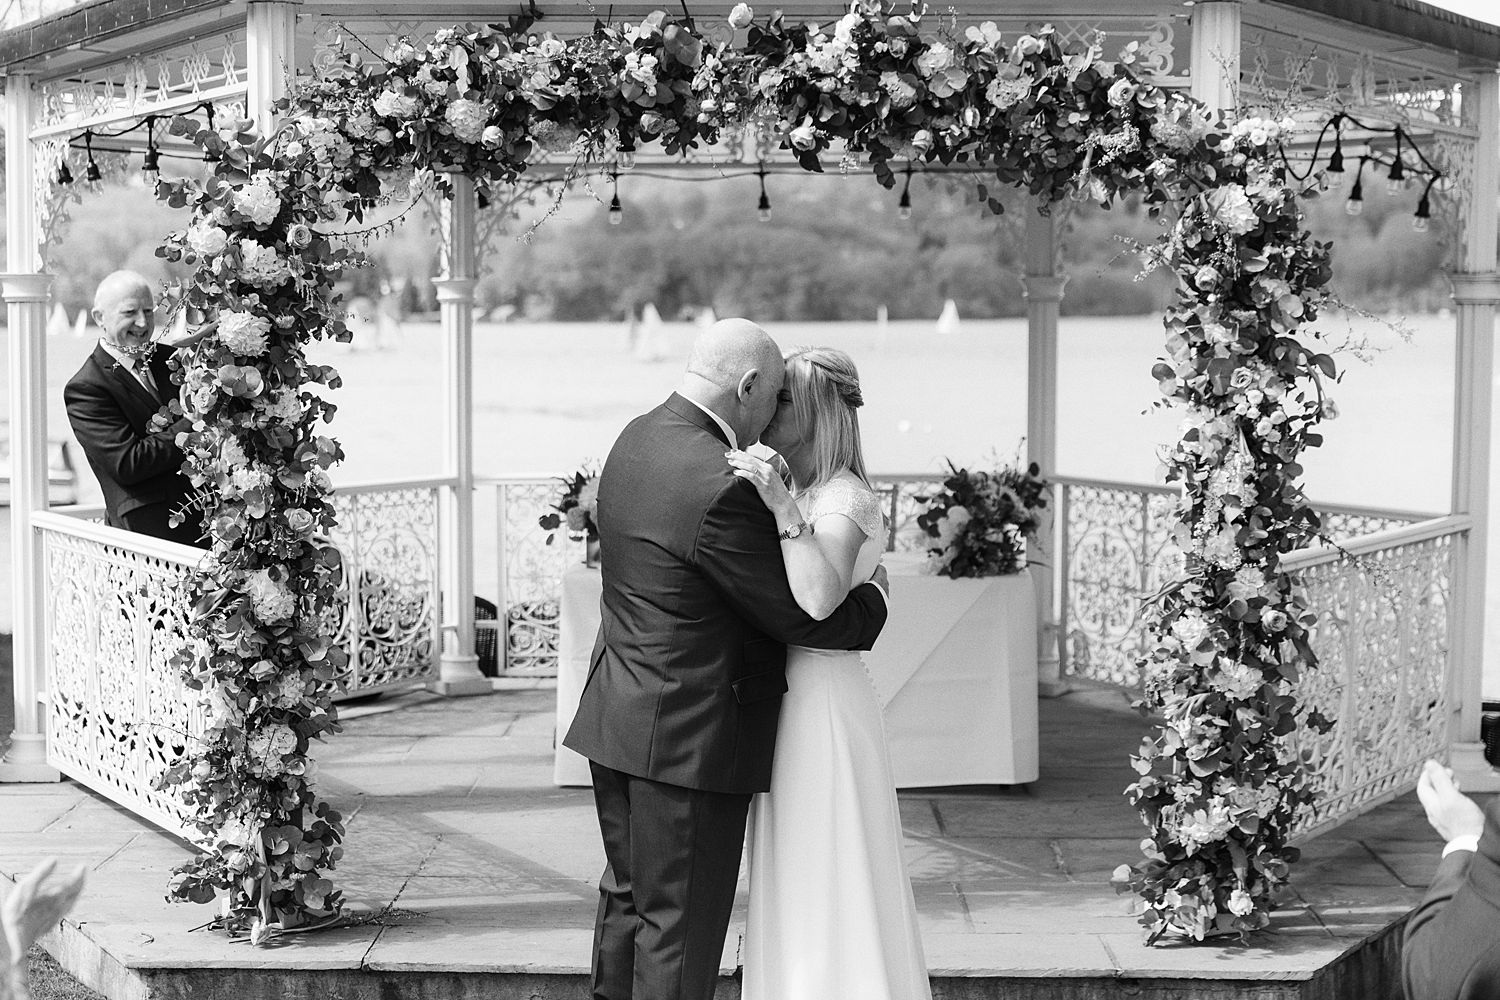 bride and groom share a kiss in outdoor ceremony overlooking Lake Windermere, at Storrs Hall, Bowness on Windermere